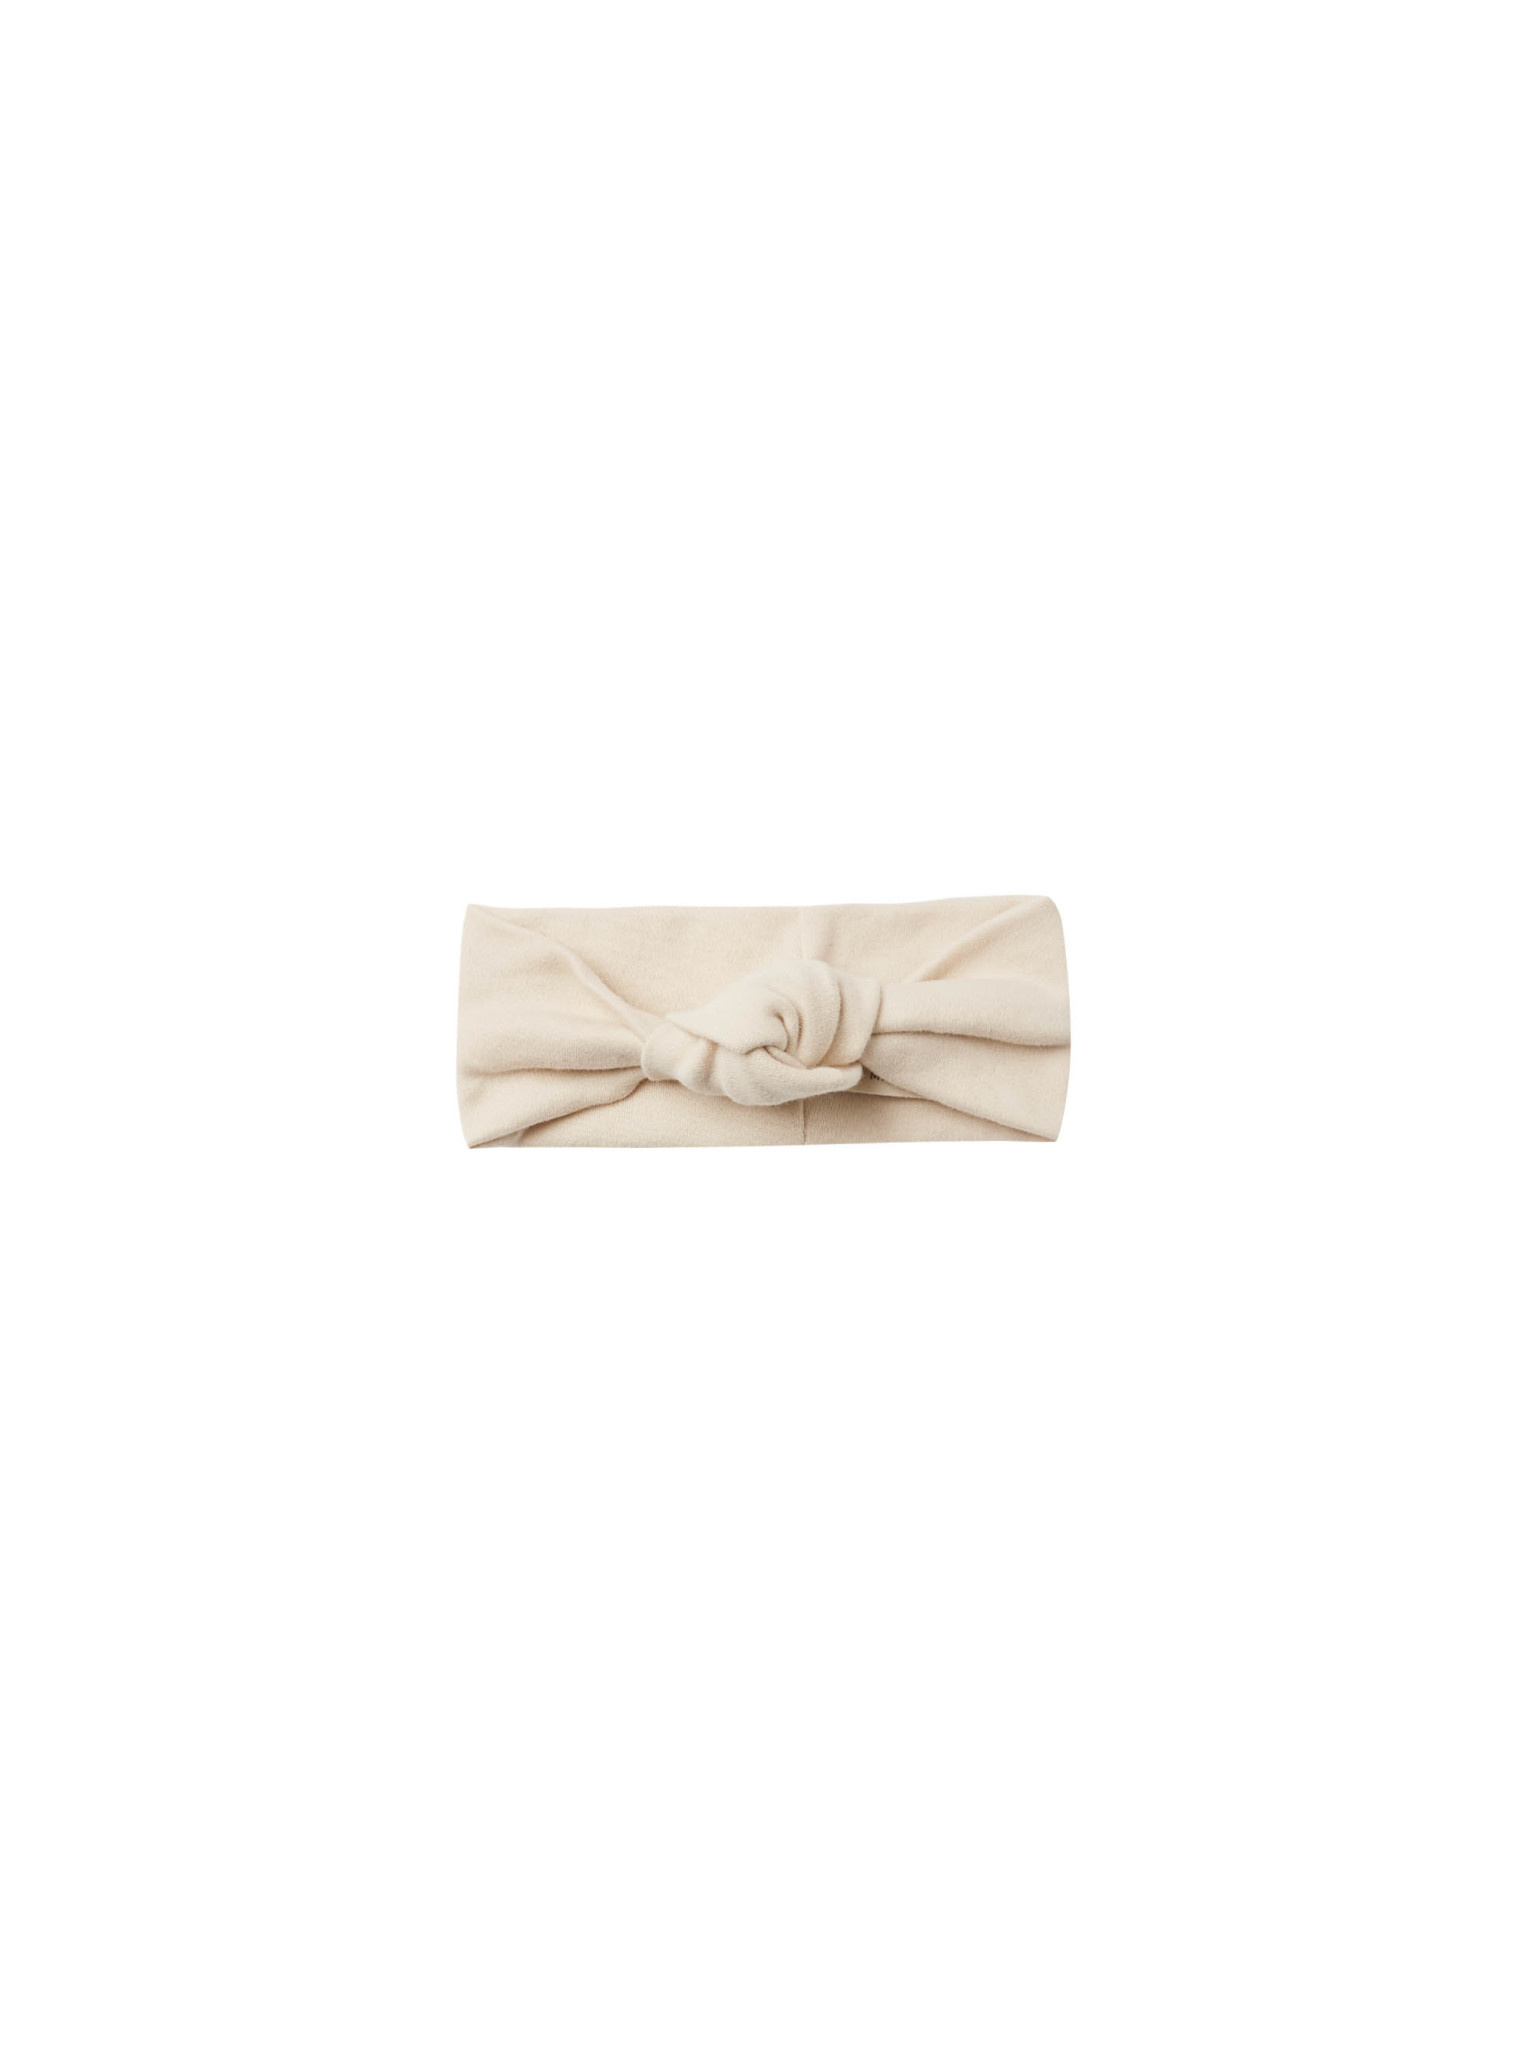 Quincy Mae Knotted Headband - Natural